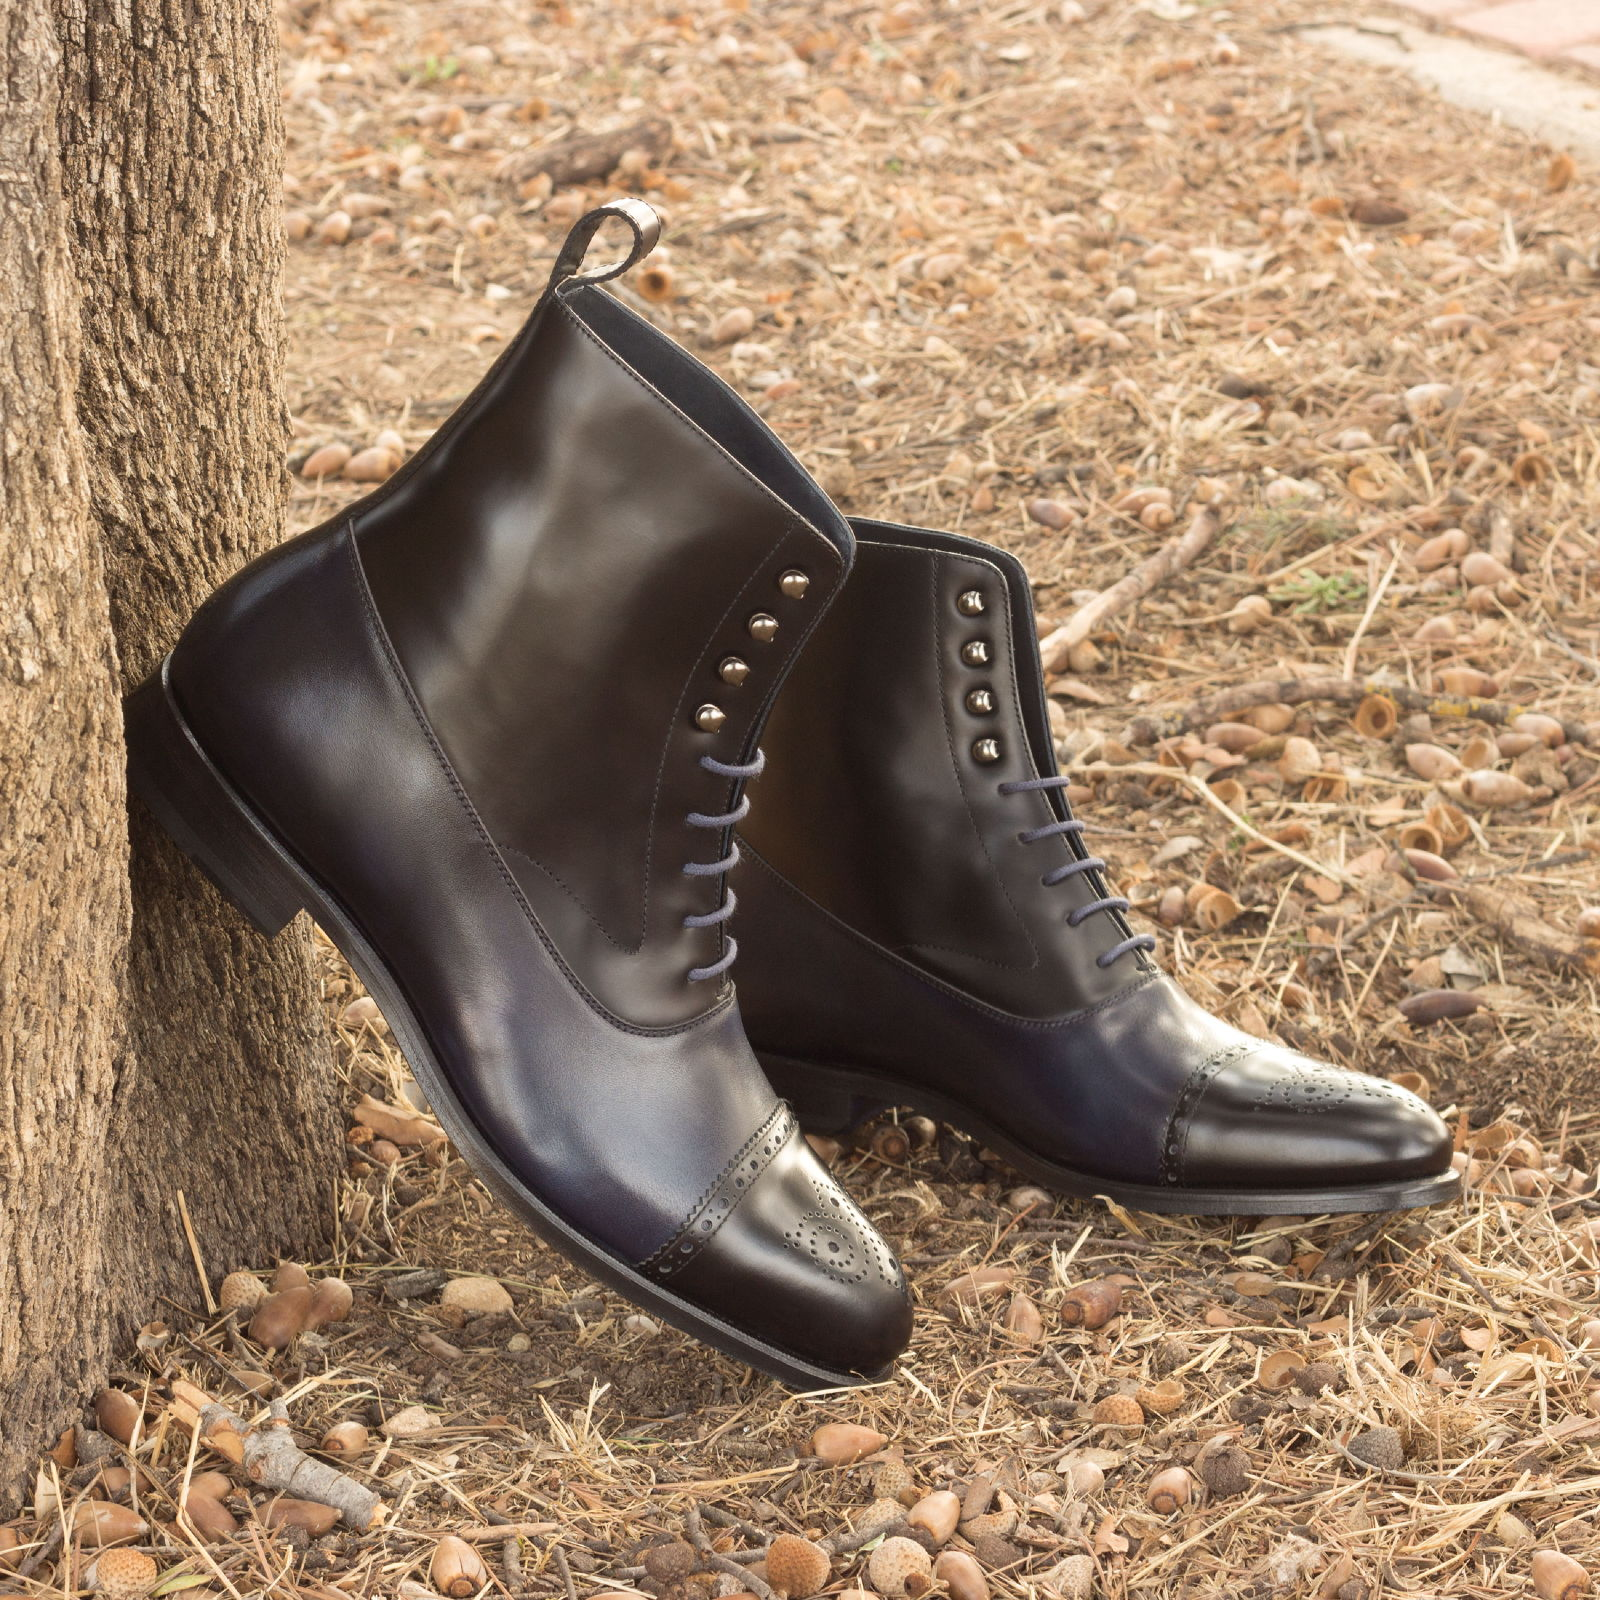 Balmoral boot  black polished calf + navy painted calf : 260€